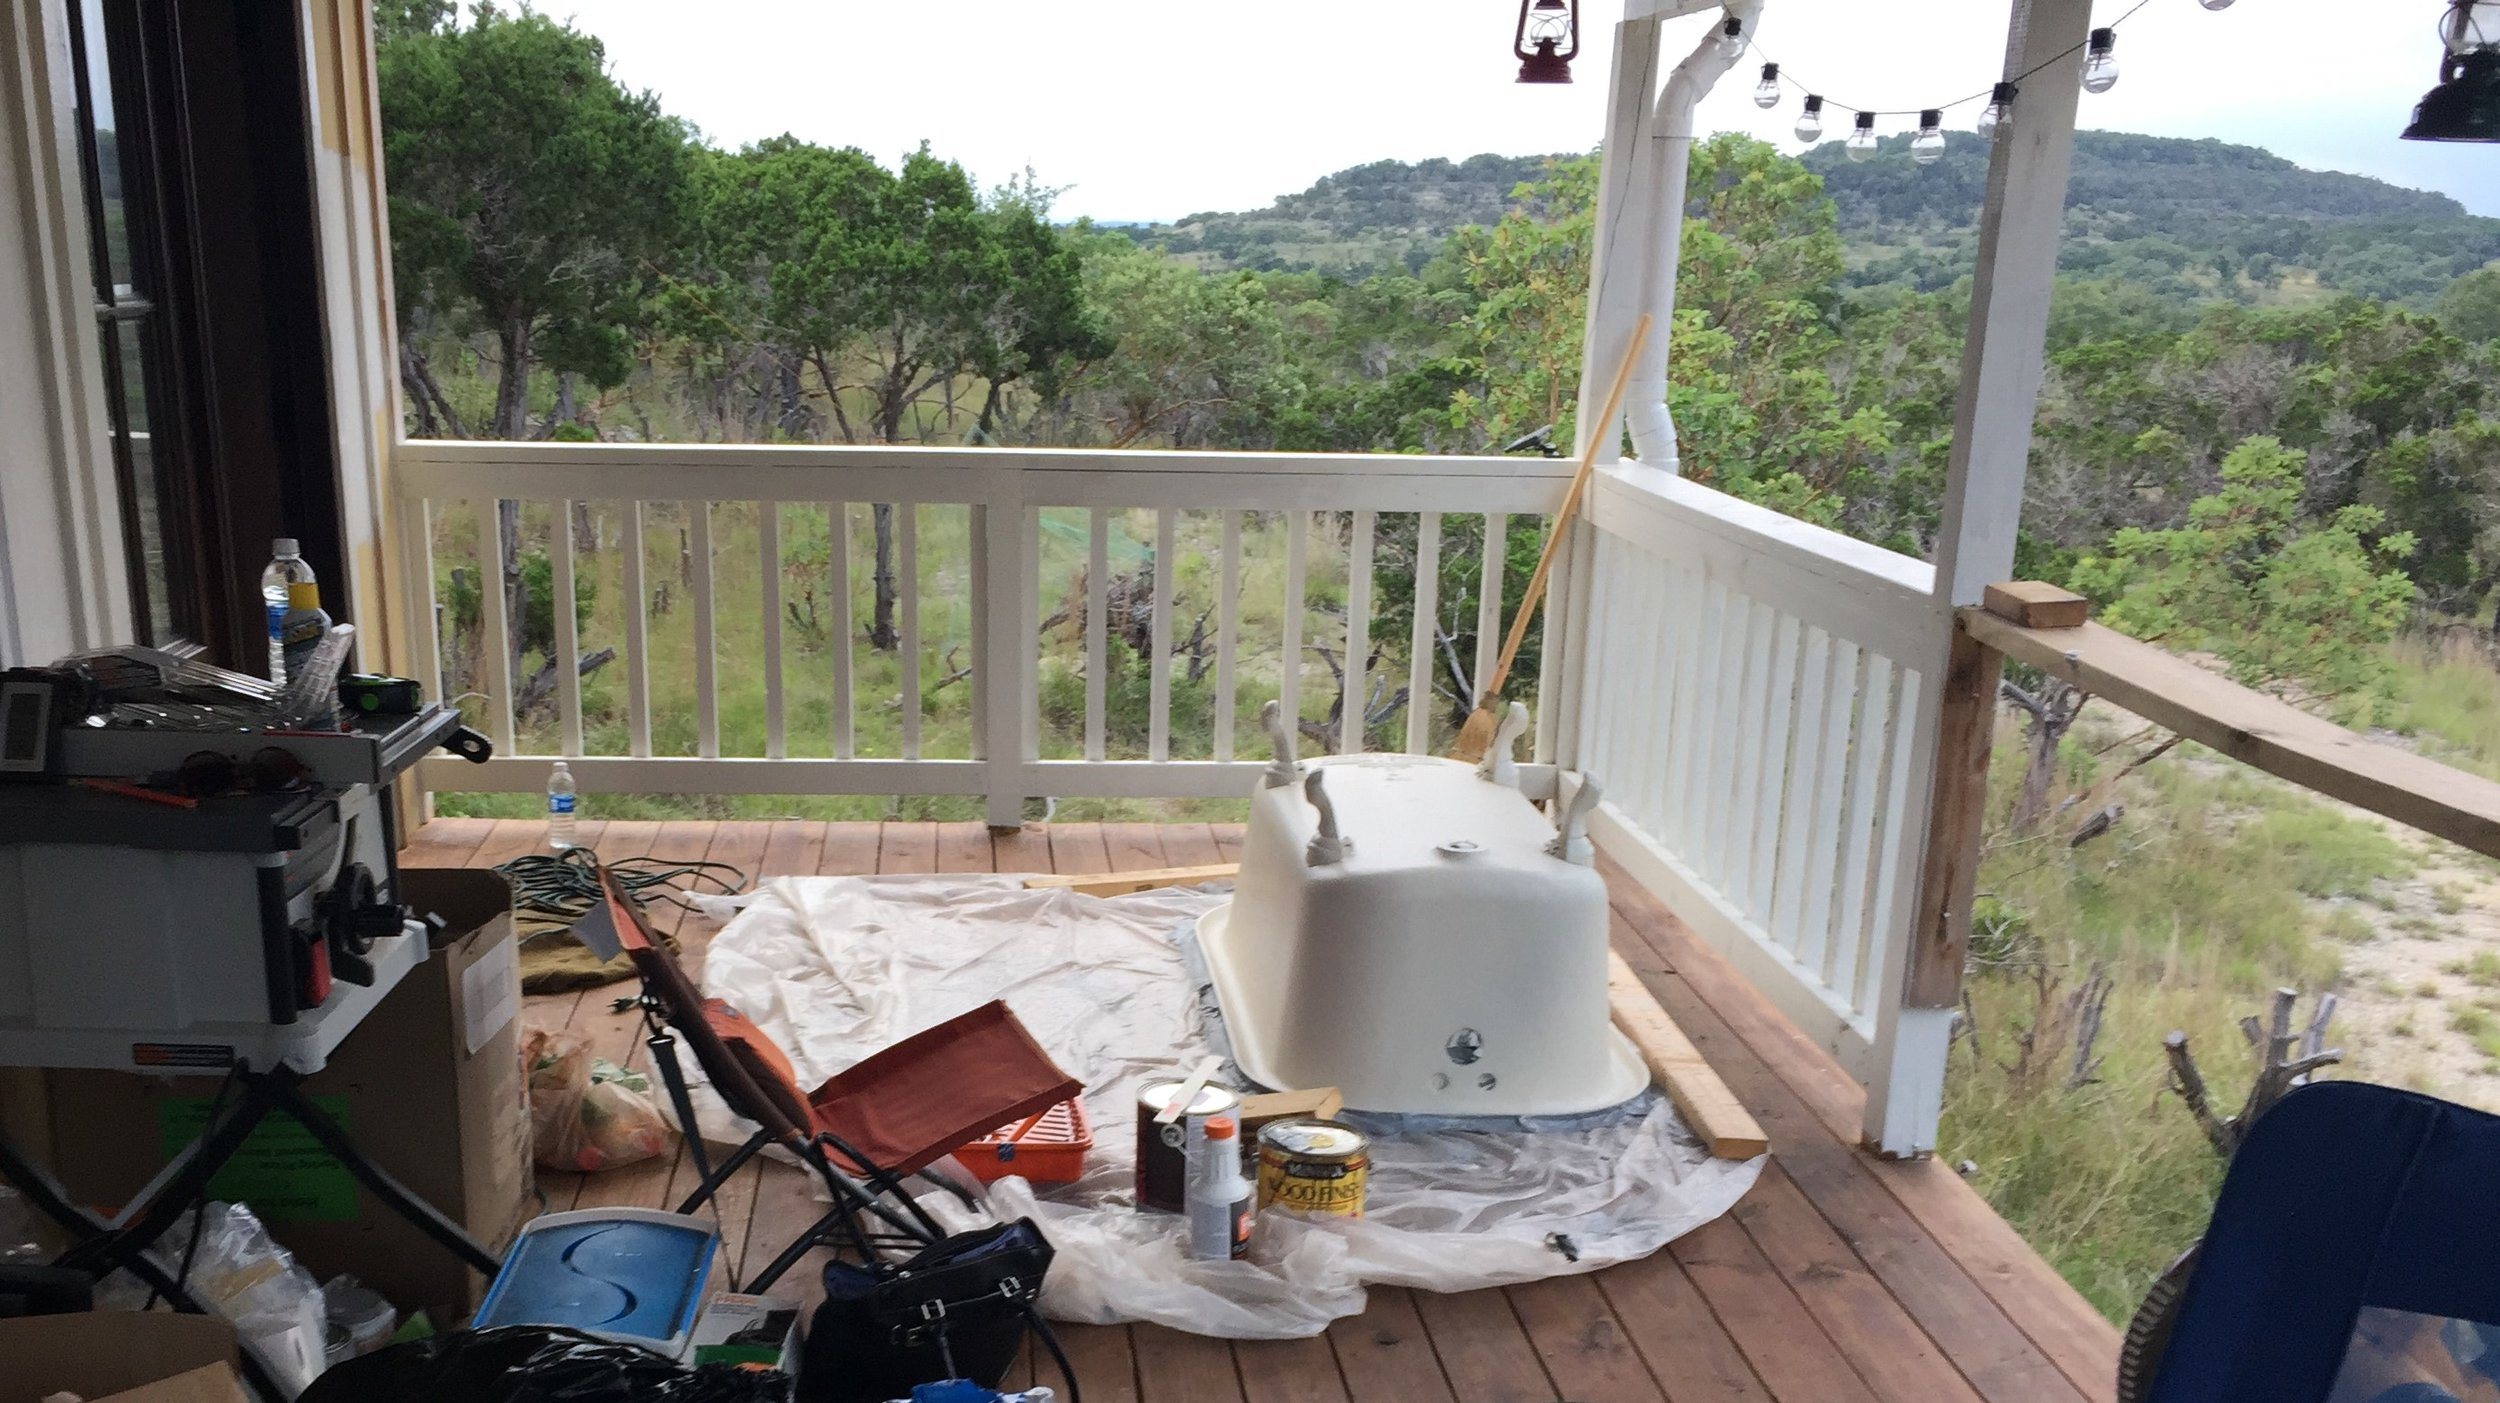 The clawfoot tub on our back porch, covered from the elements. It stayed on the porch about 2 months before we were ready to install it.  Once we were finally ready for the install, it ended up looking like this: